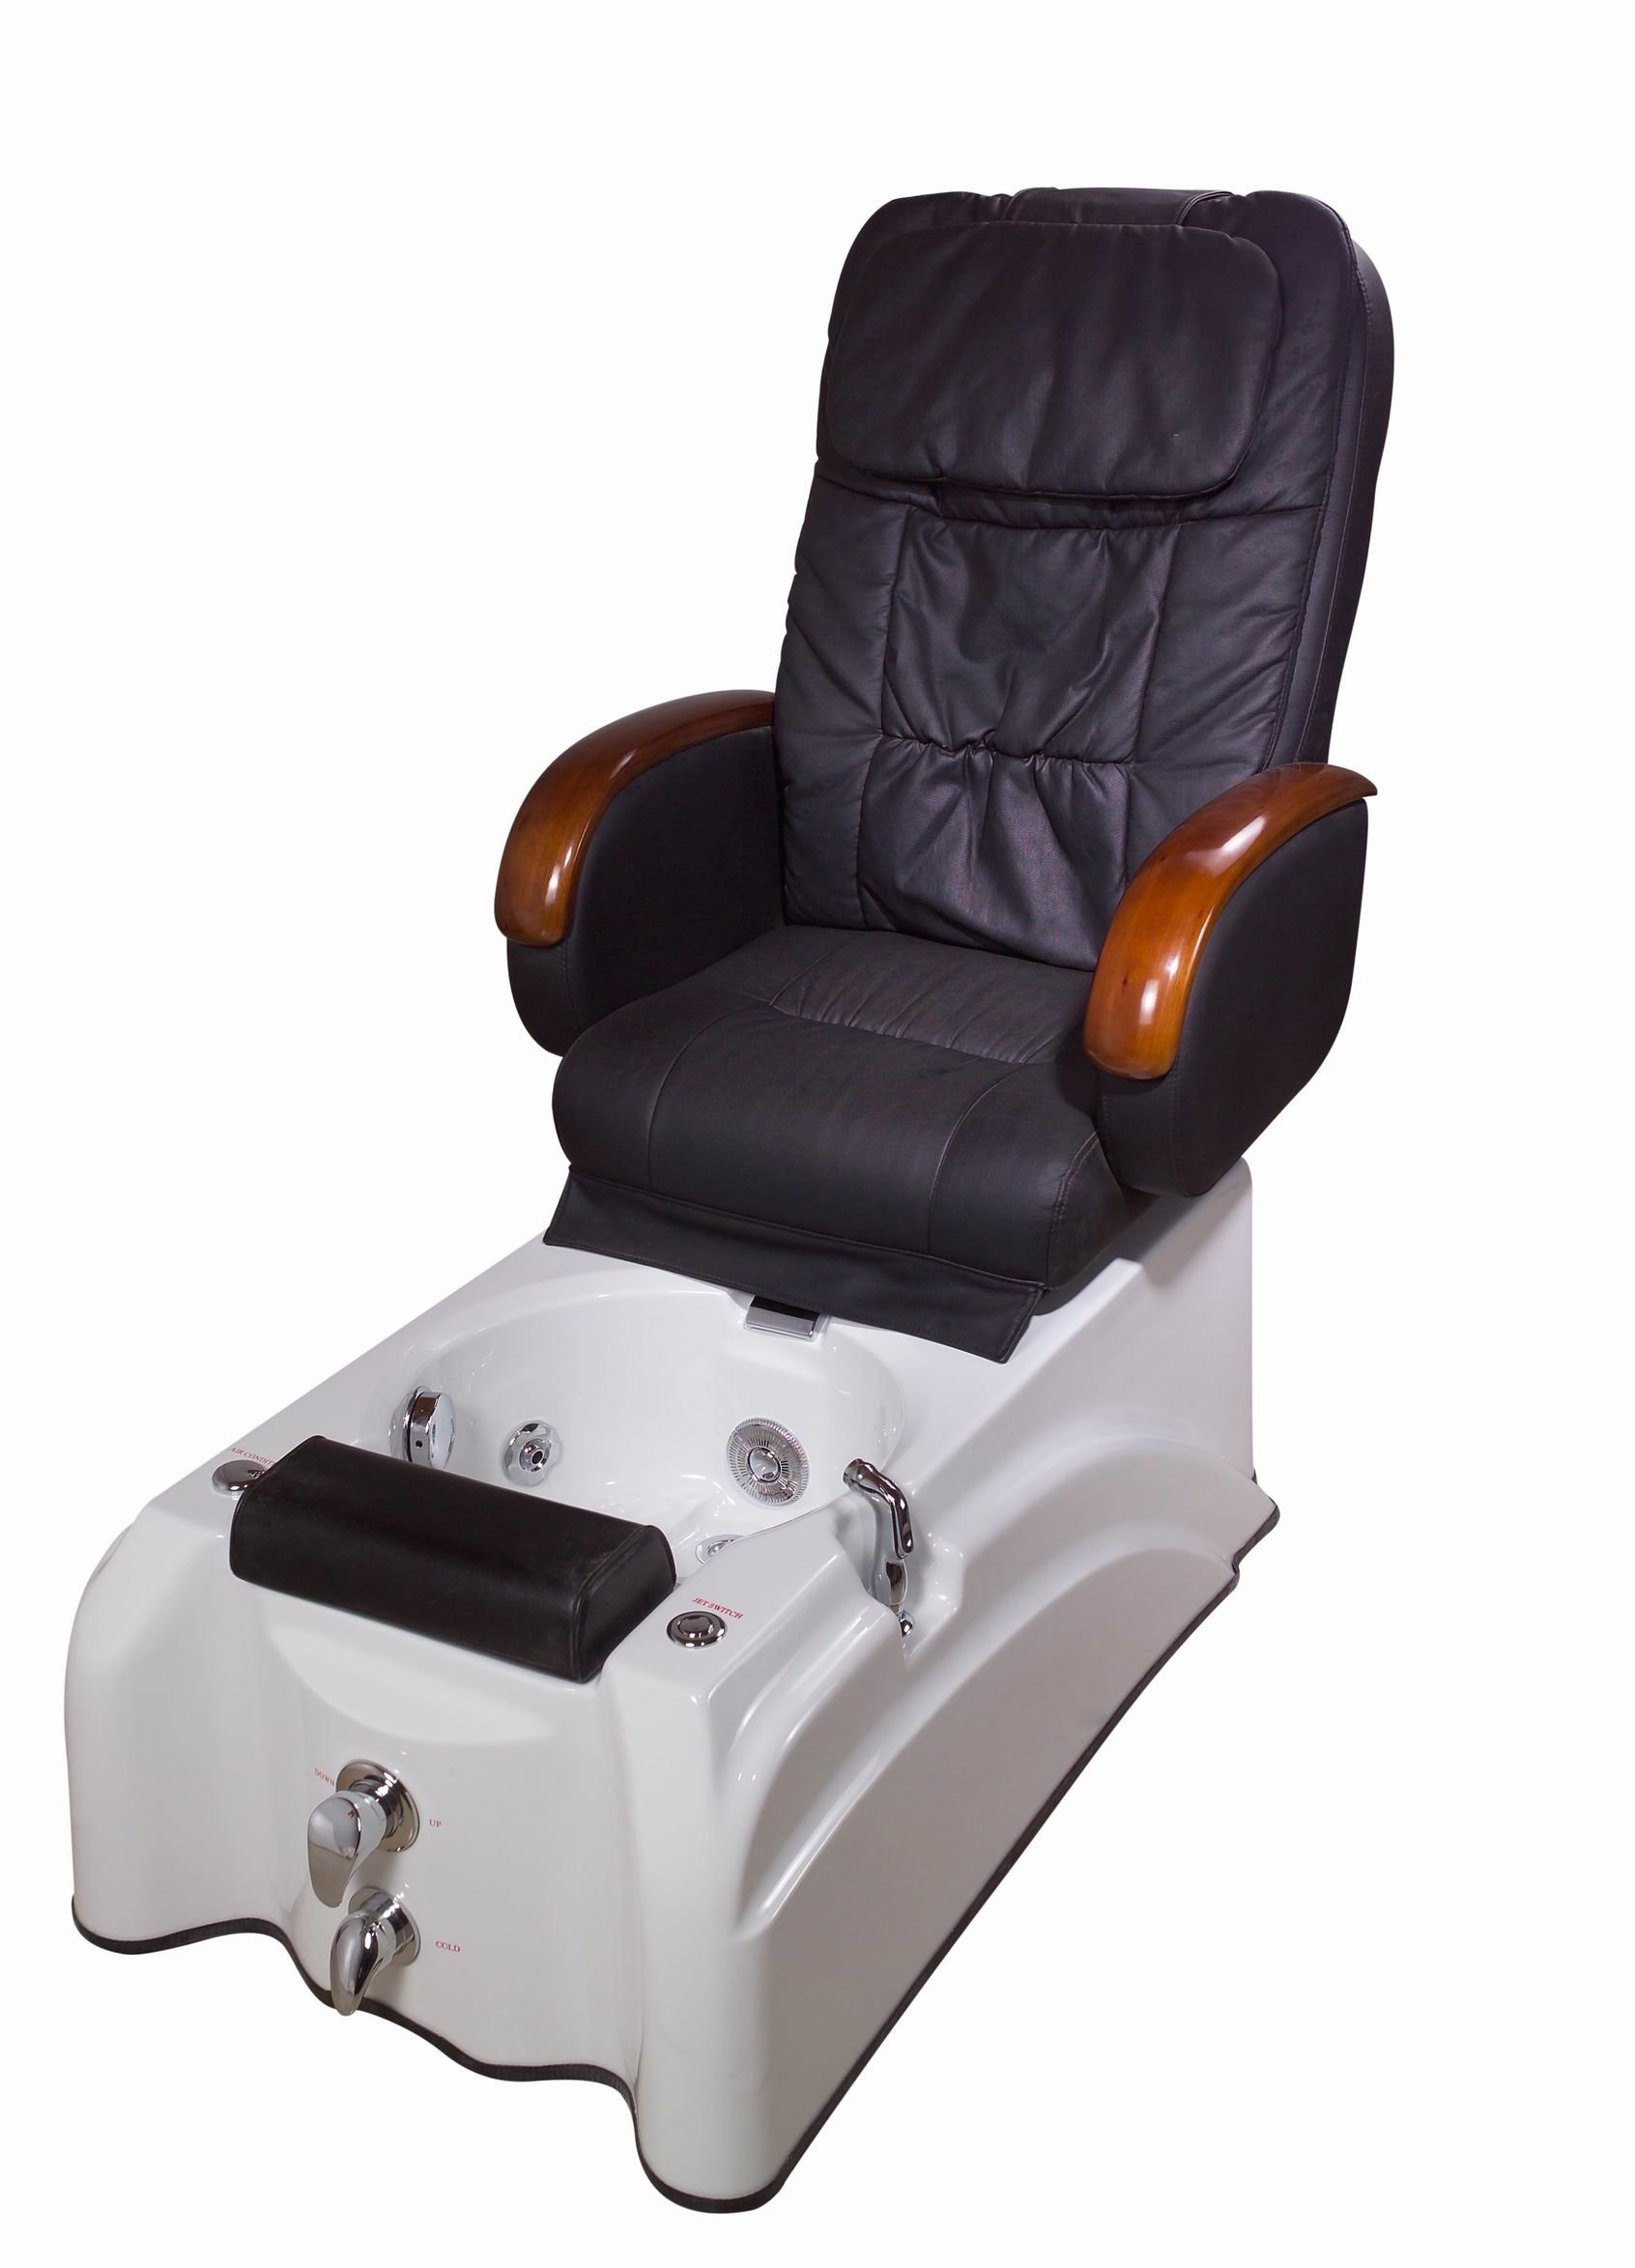 Top Rated Massage Chairs Christmas Promotion With Top Rated Salon Pedicure Spa